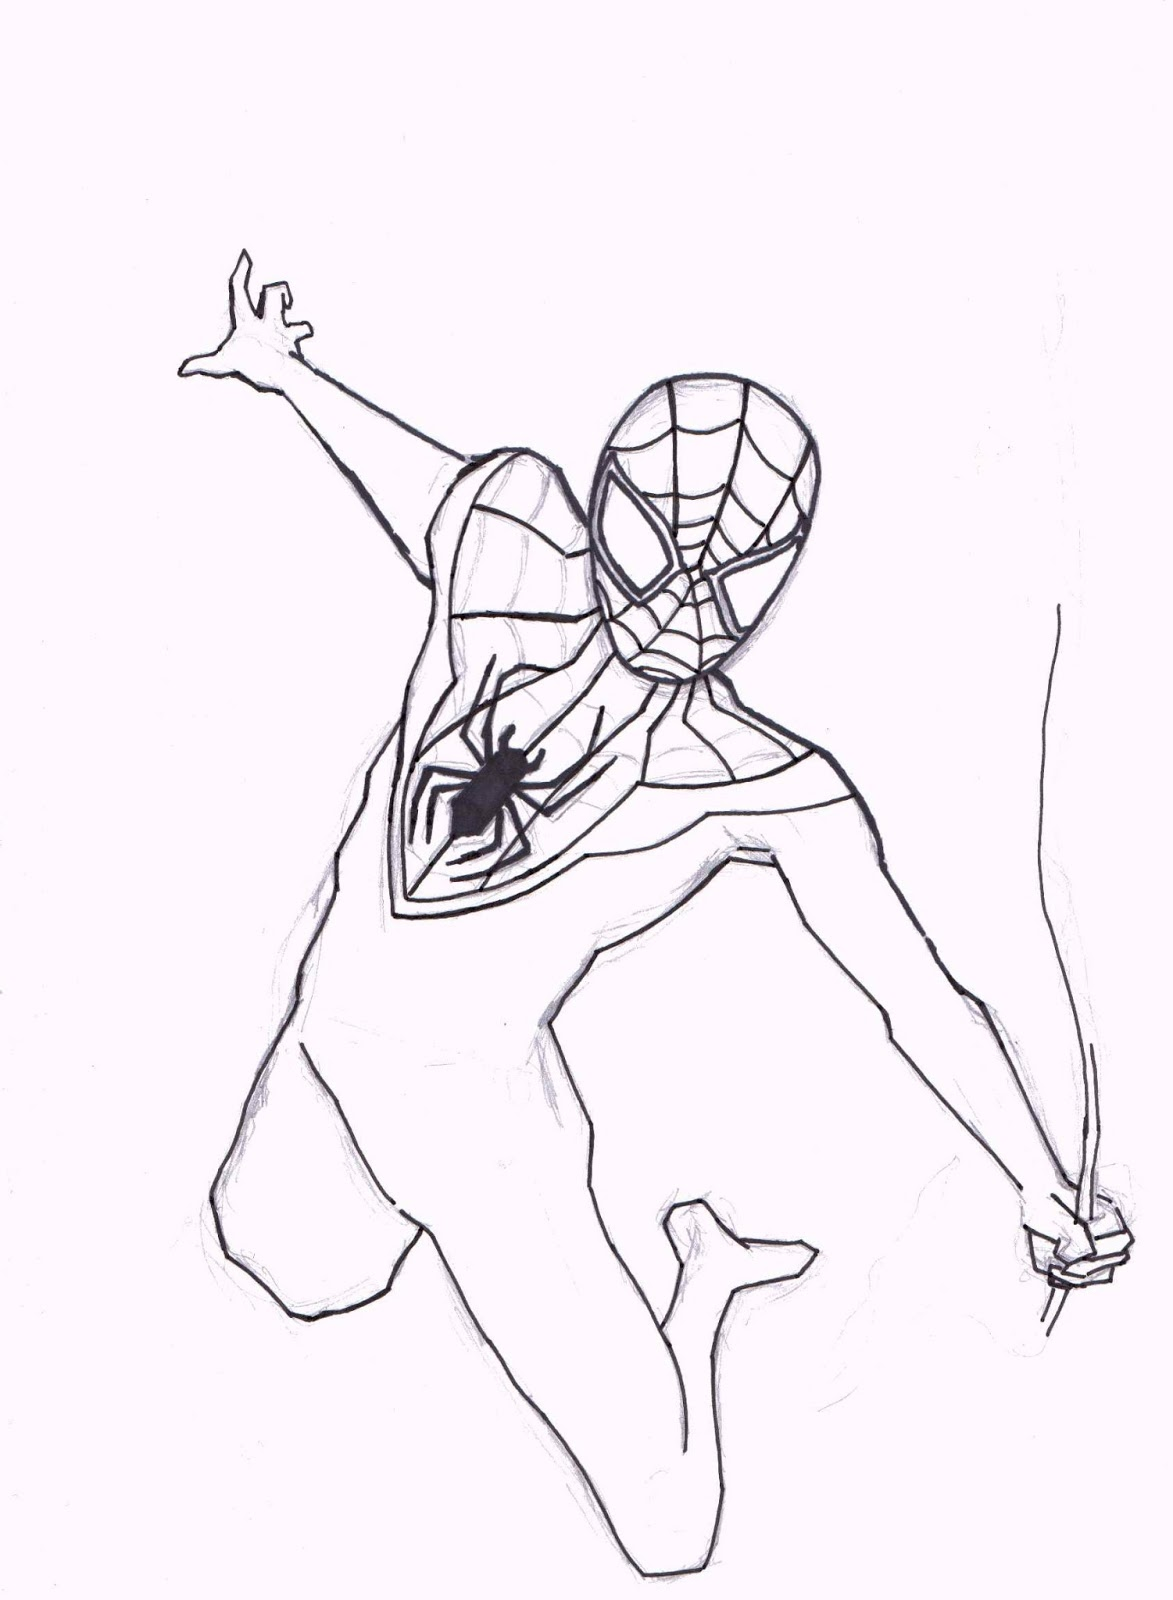 John Graham Comic Blog: Work In Progress: Ultimate Spider-Man